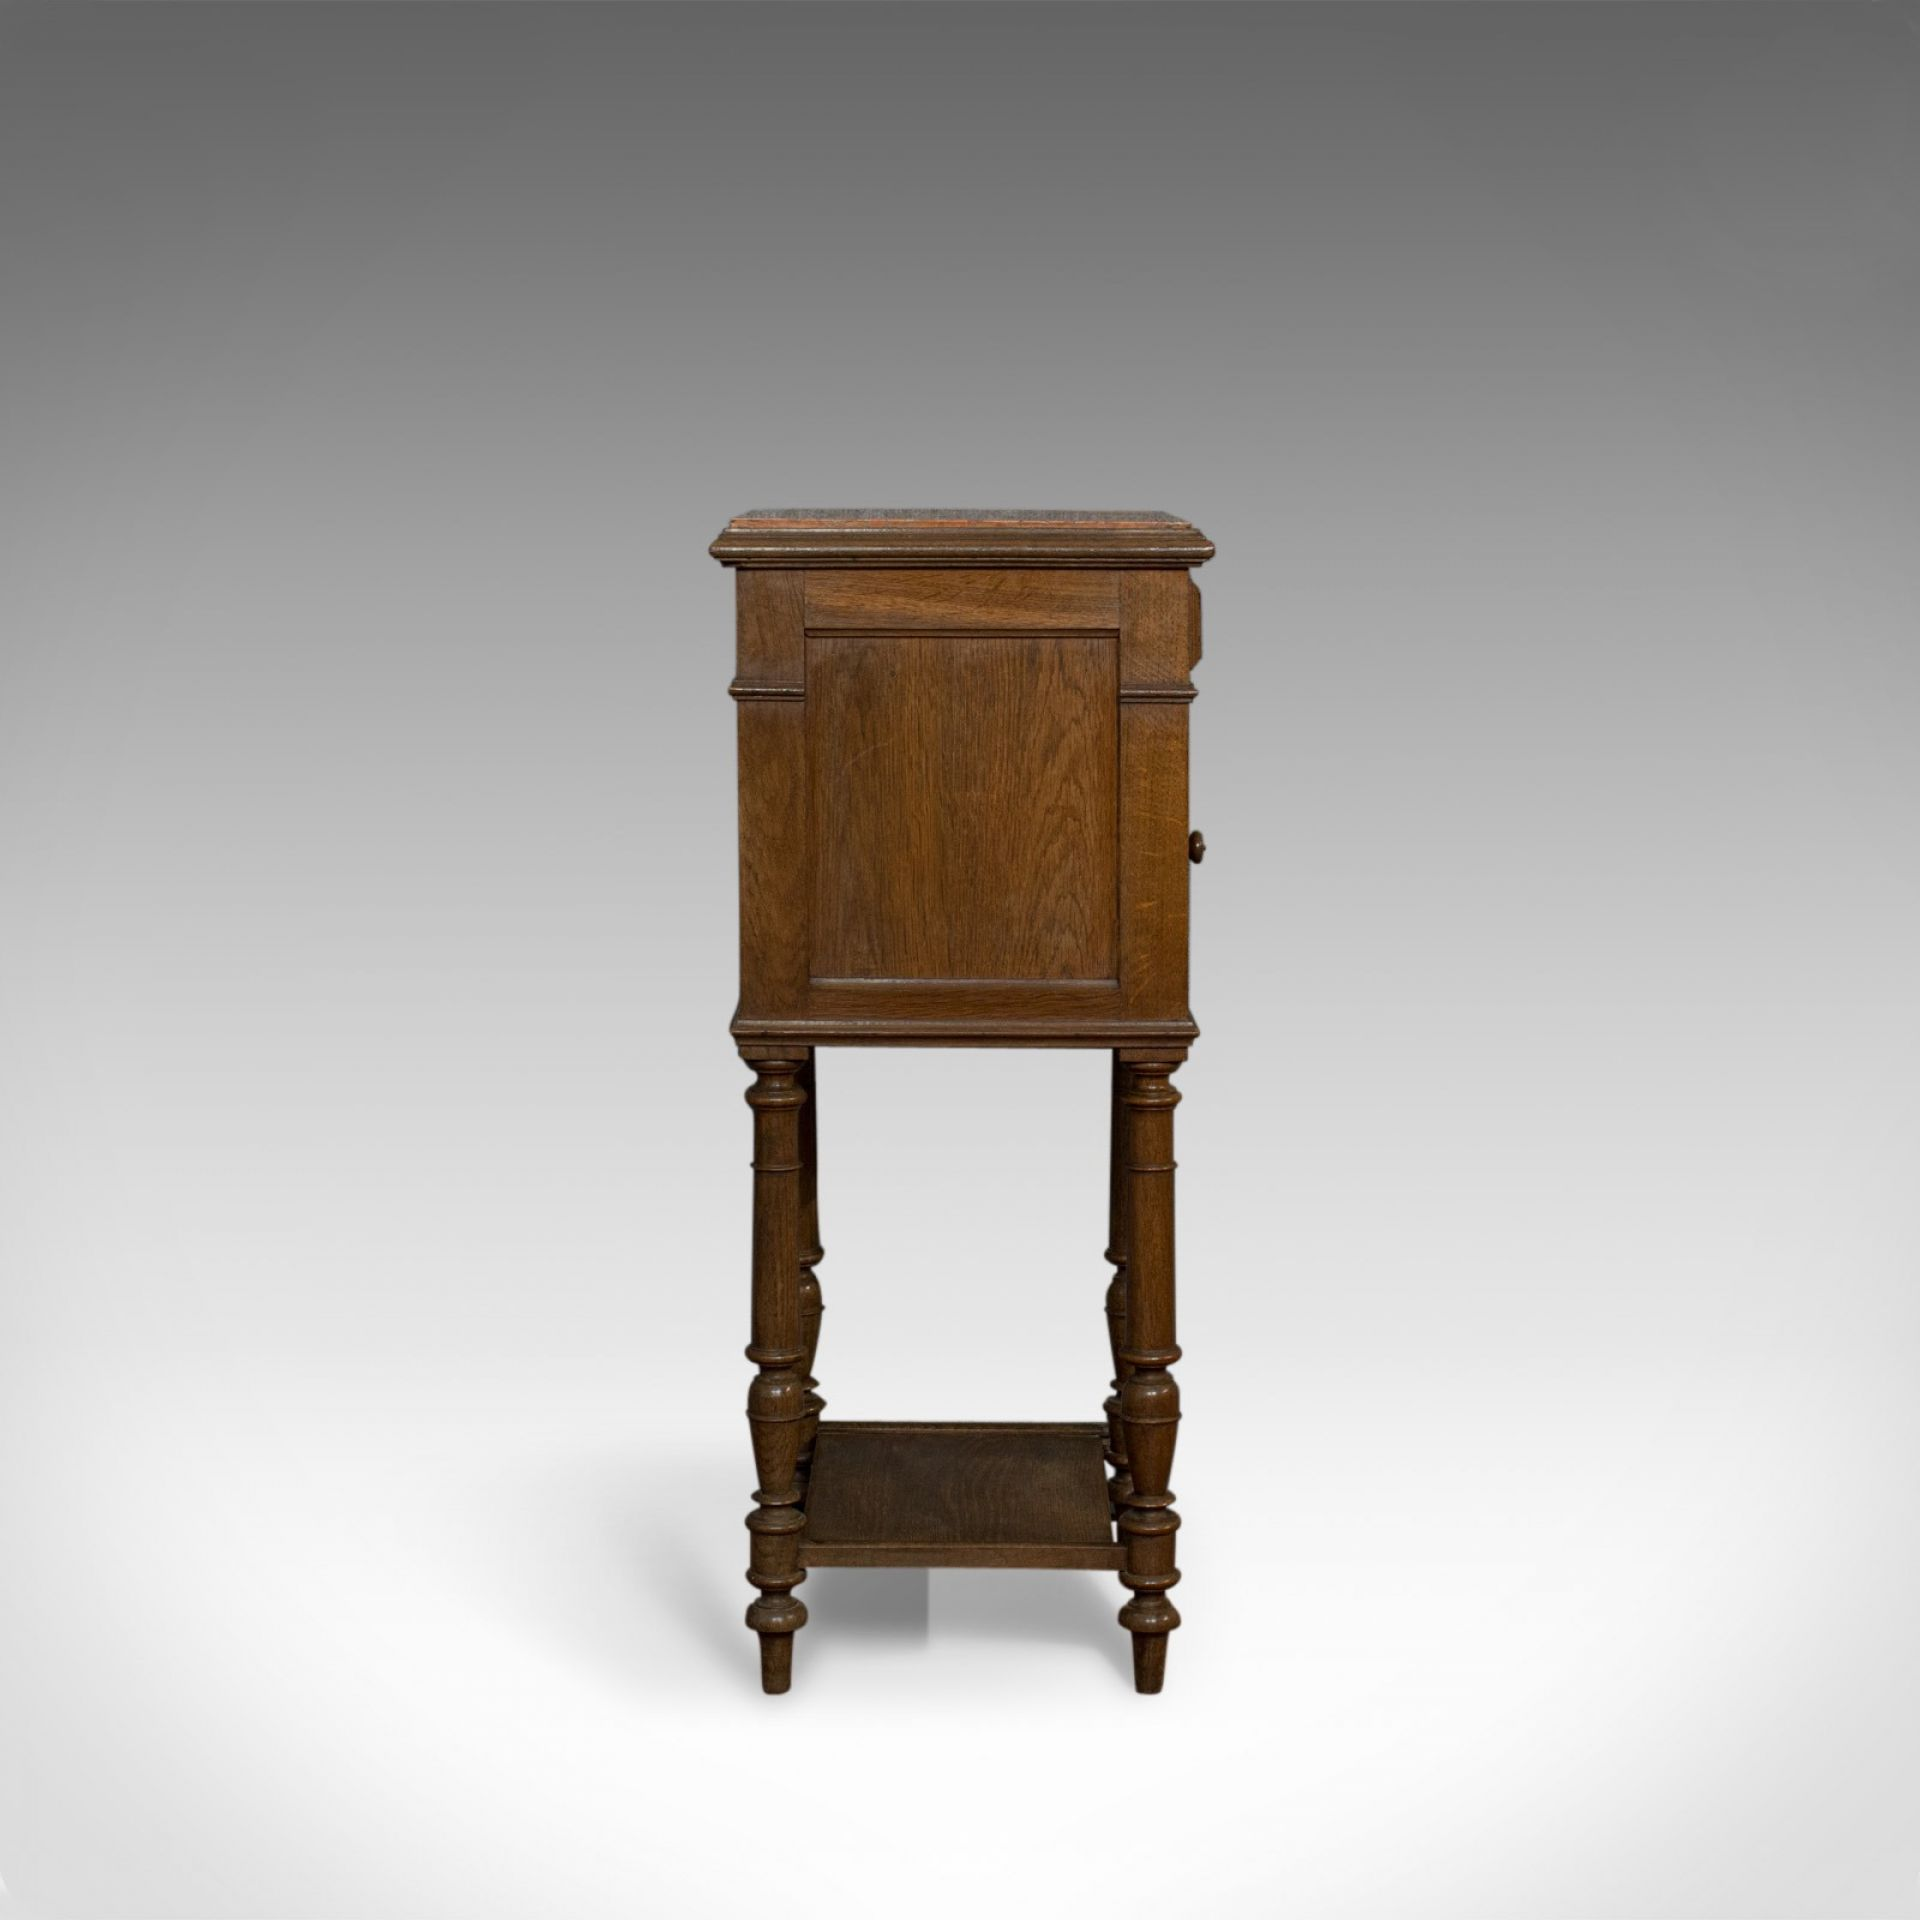 Antique Bedside Cabinet, French, Oak, Marble, Lamp, Side, Circa 1950